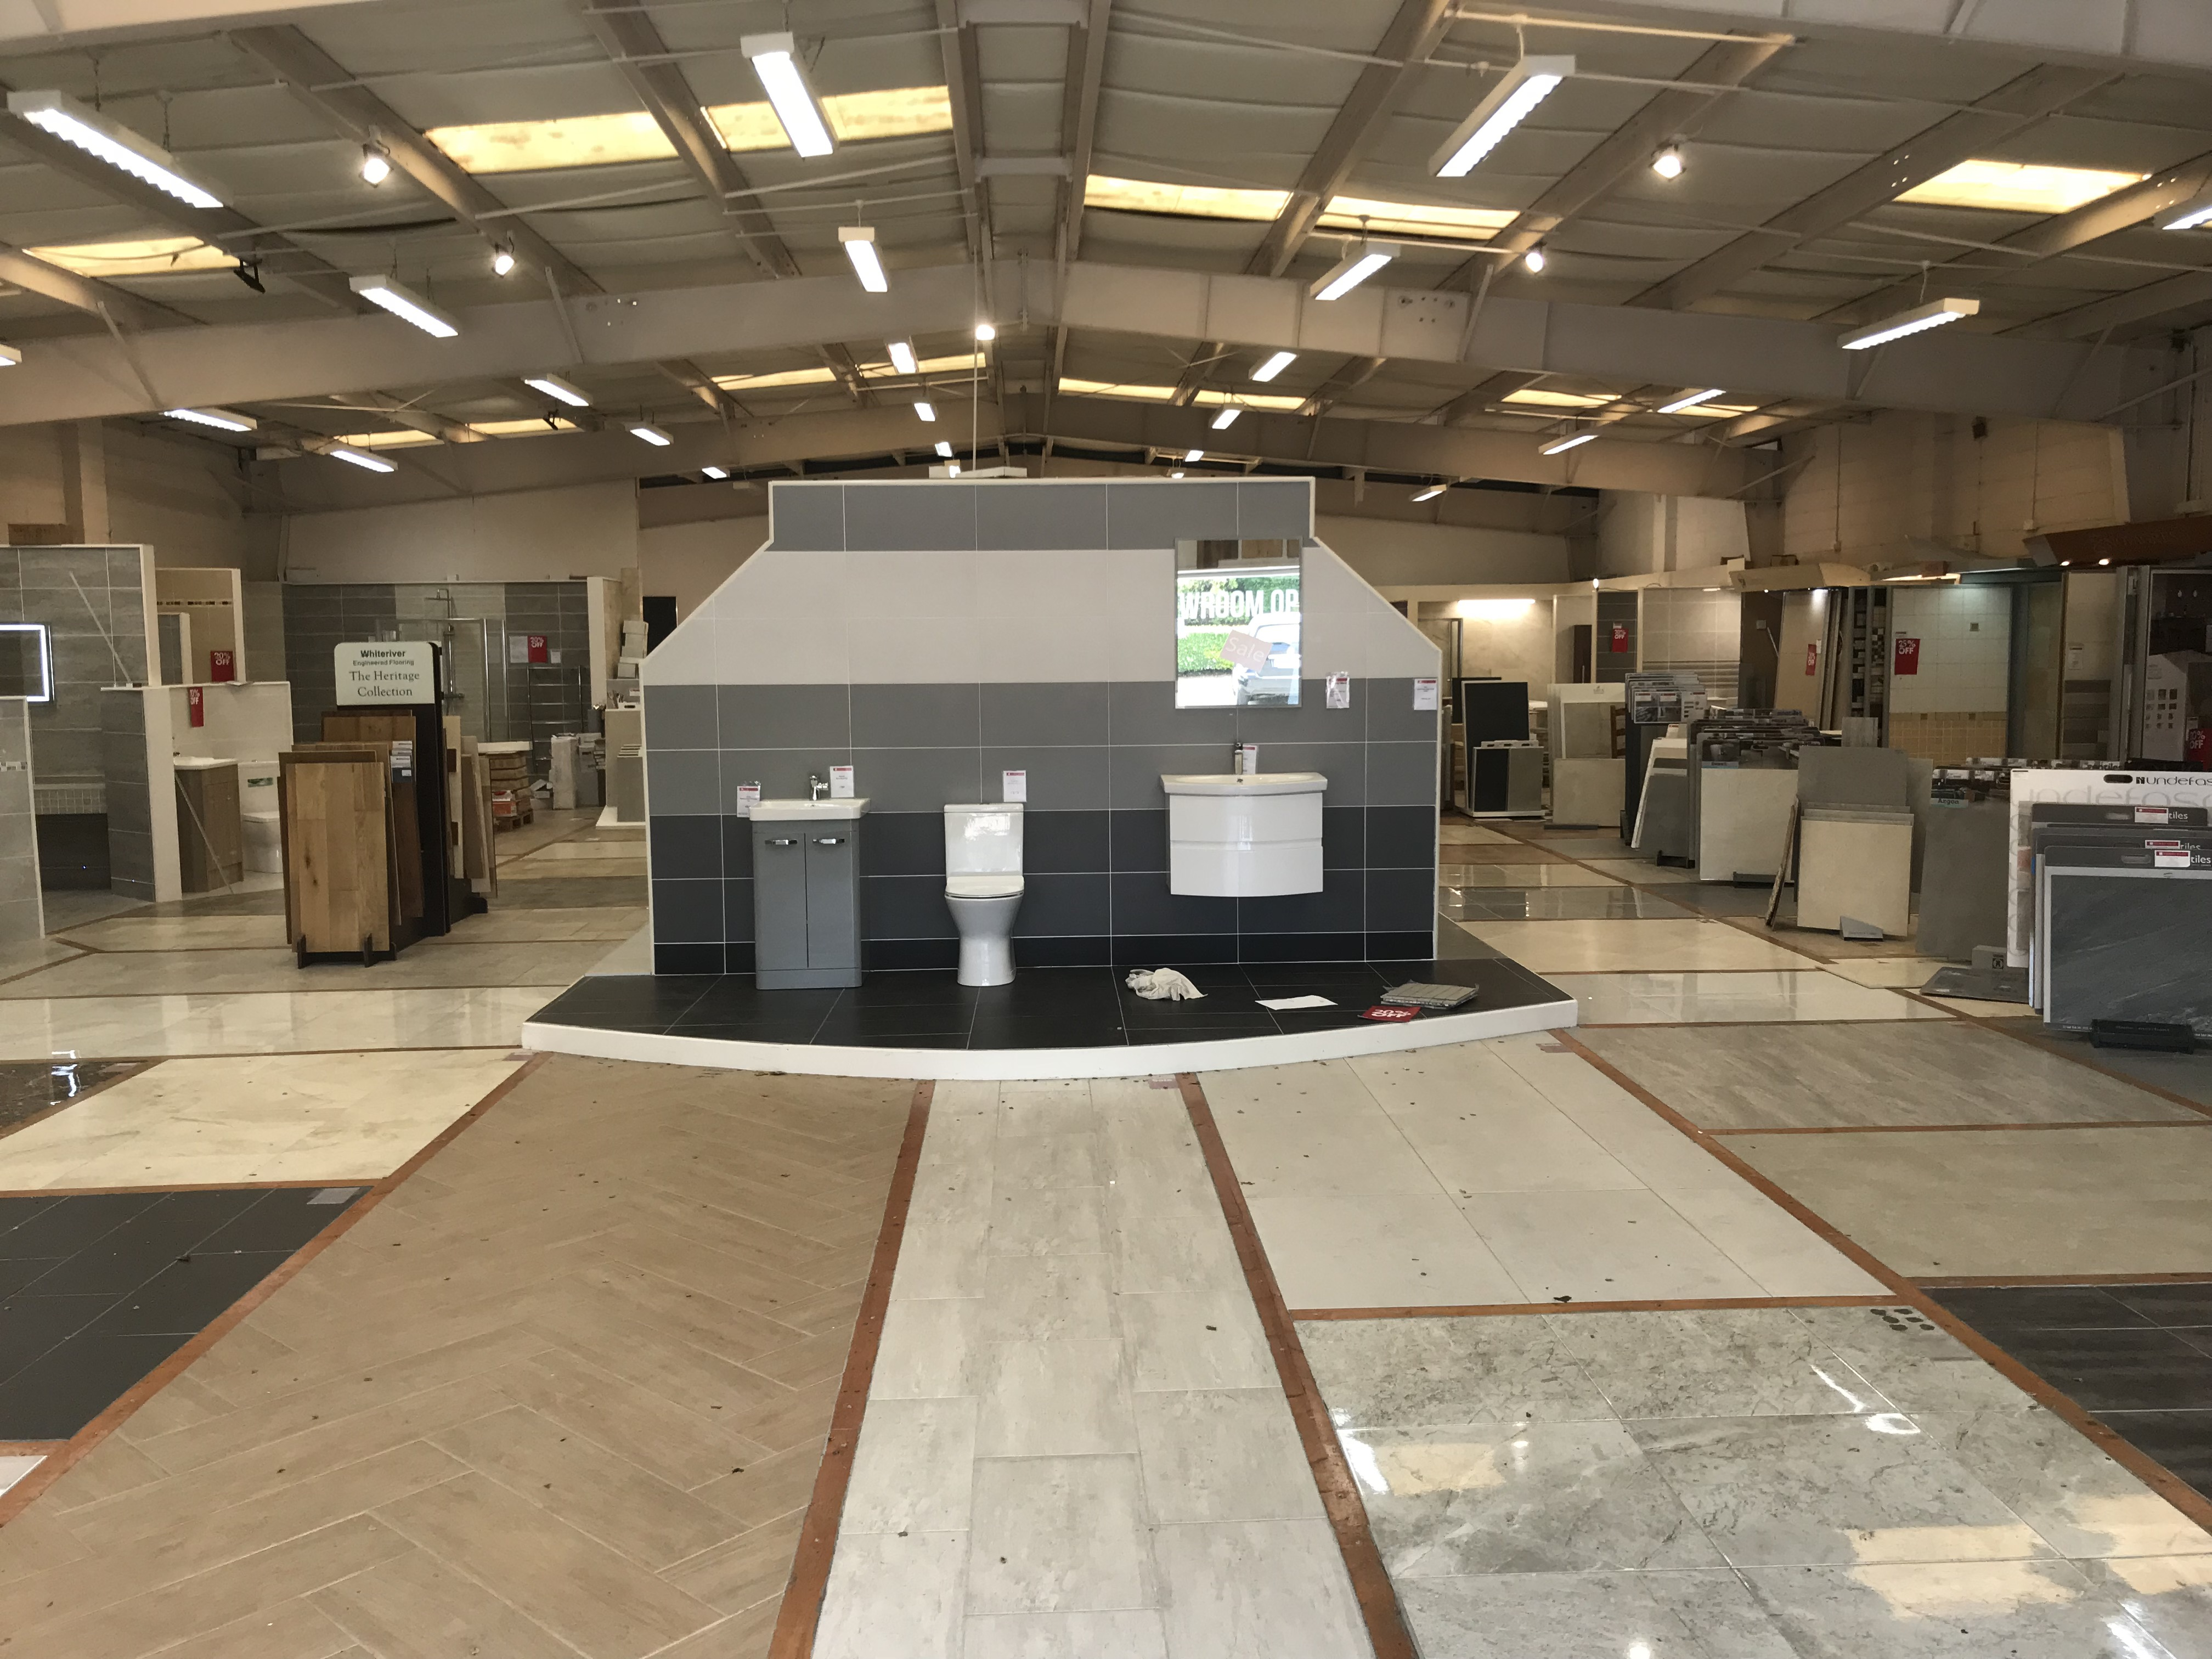 A Gorey Based Business Providing Bathroom Tiles Kitchen Suites And Timber Flooring To Customers In The South East Of Ireland